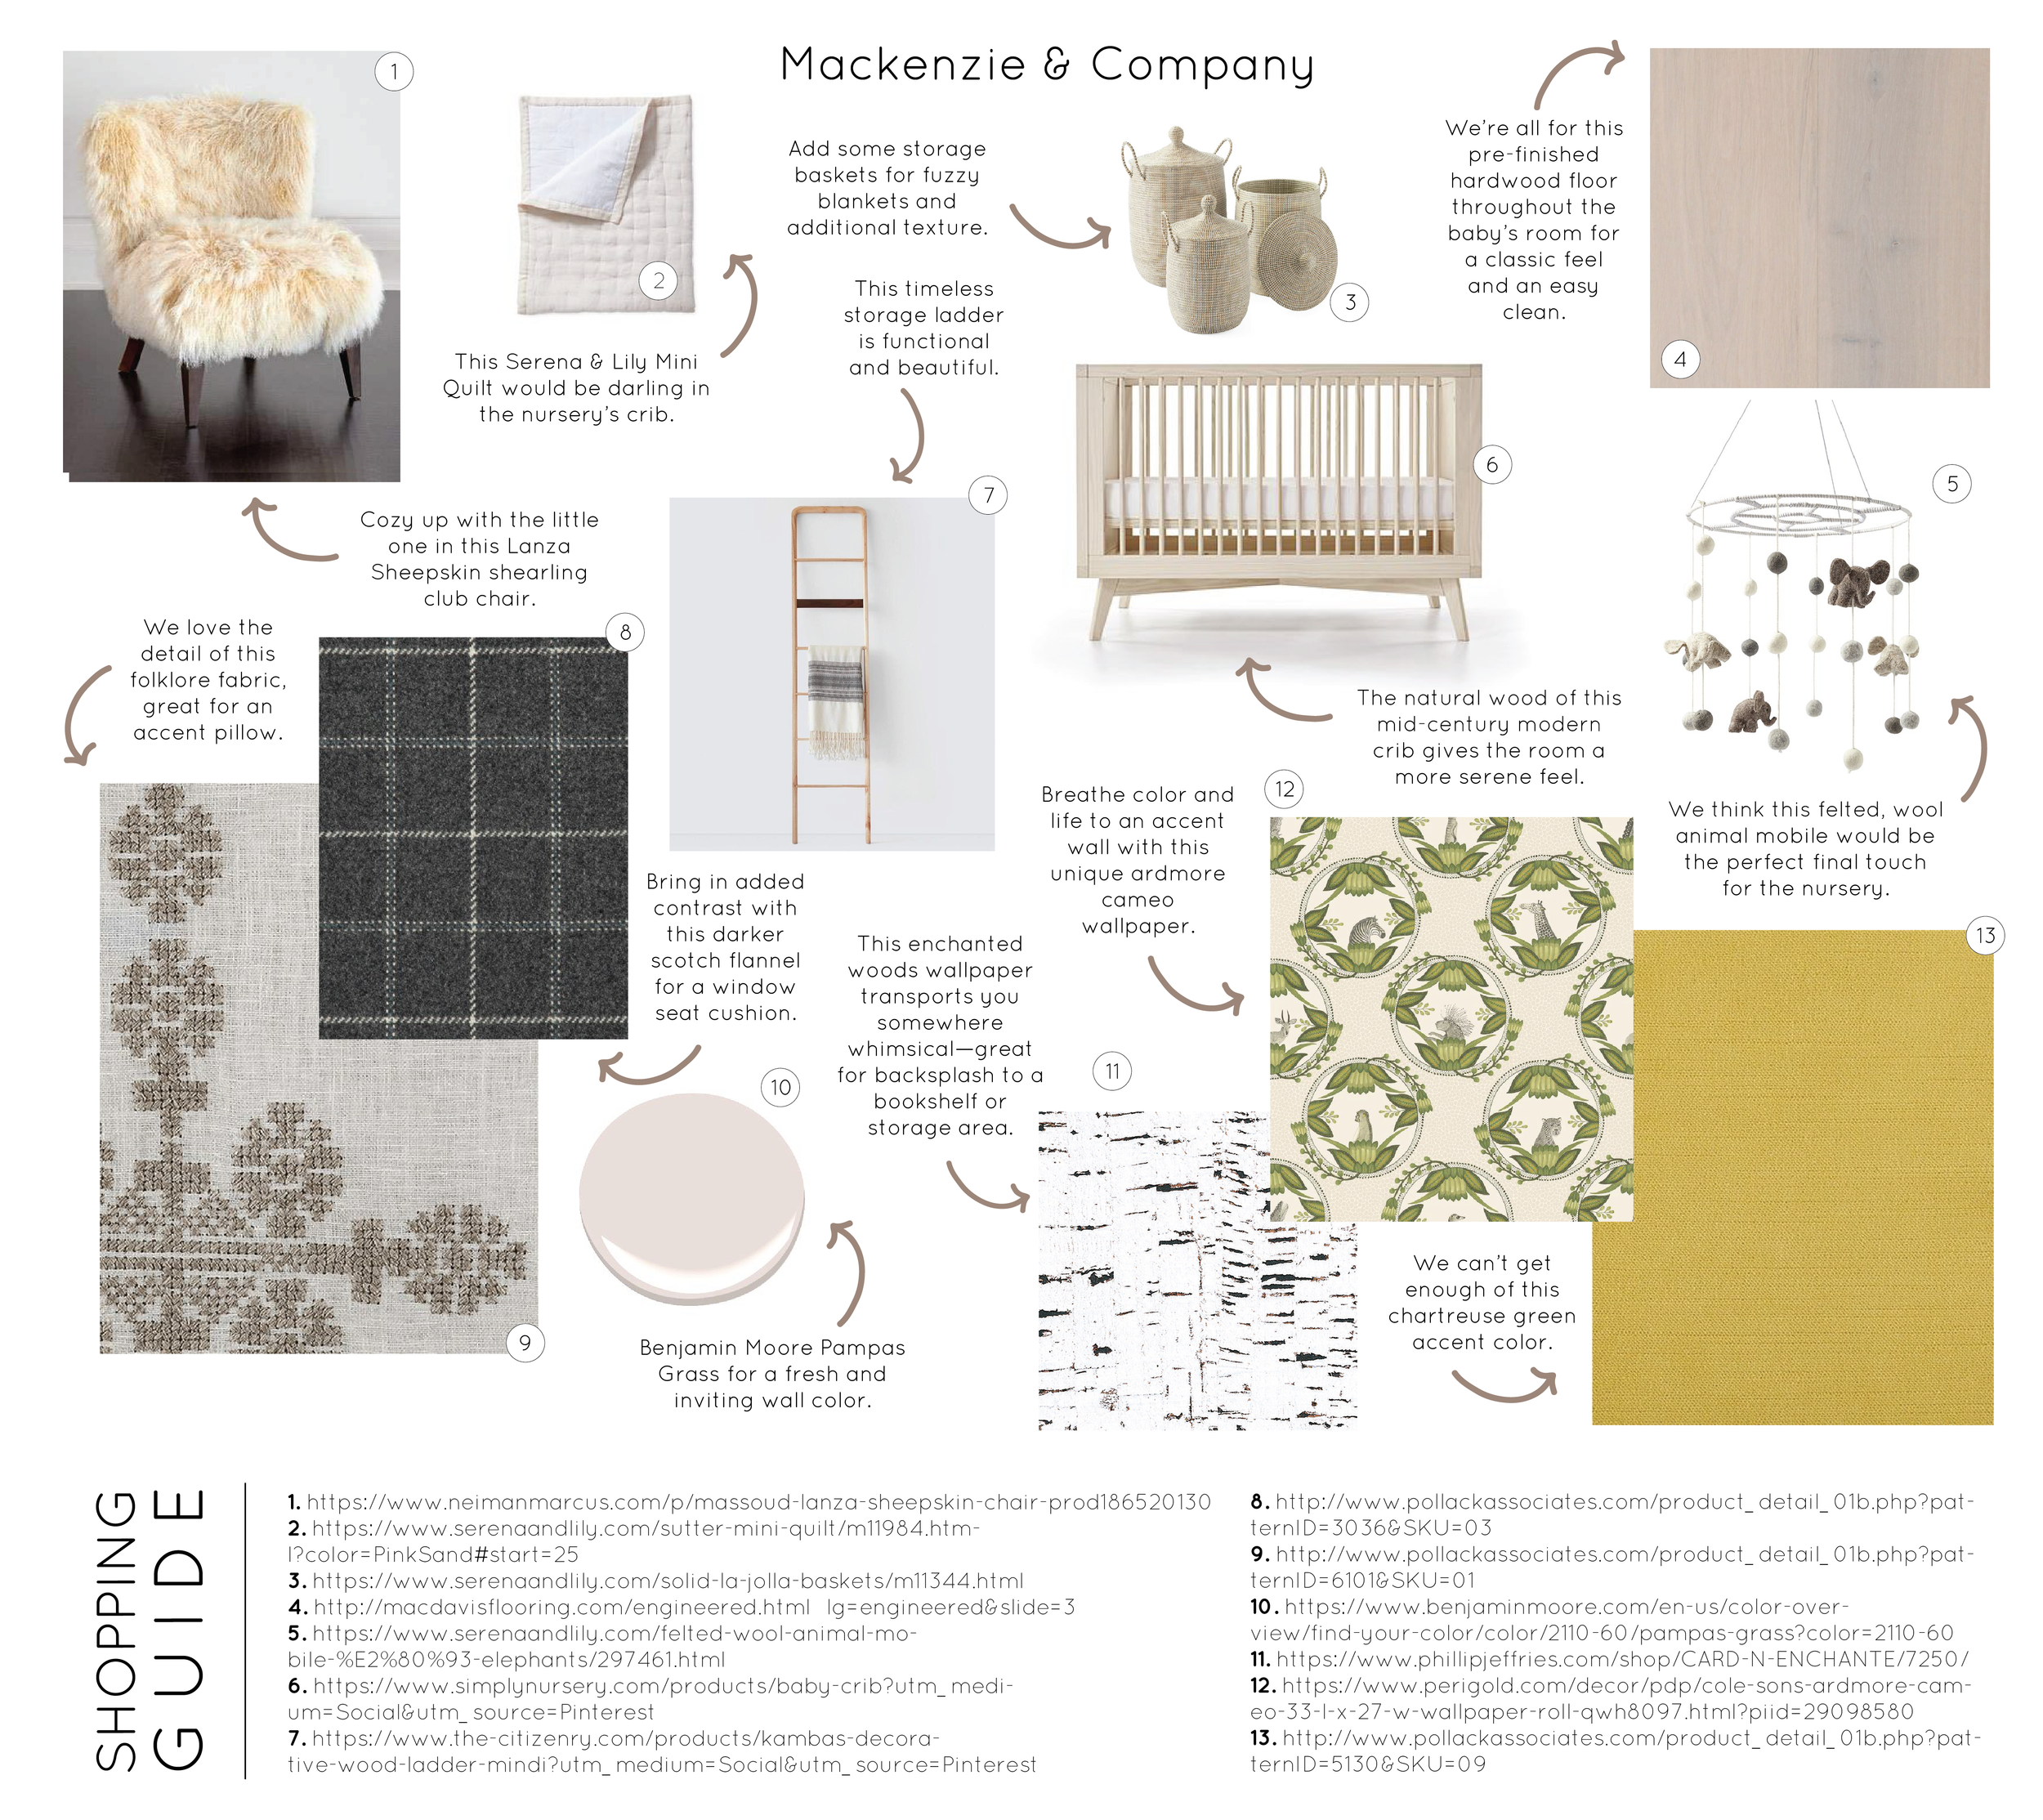 mackenzie-and-company-boston-magazine-nursery-interior-design-guide.png